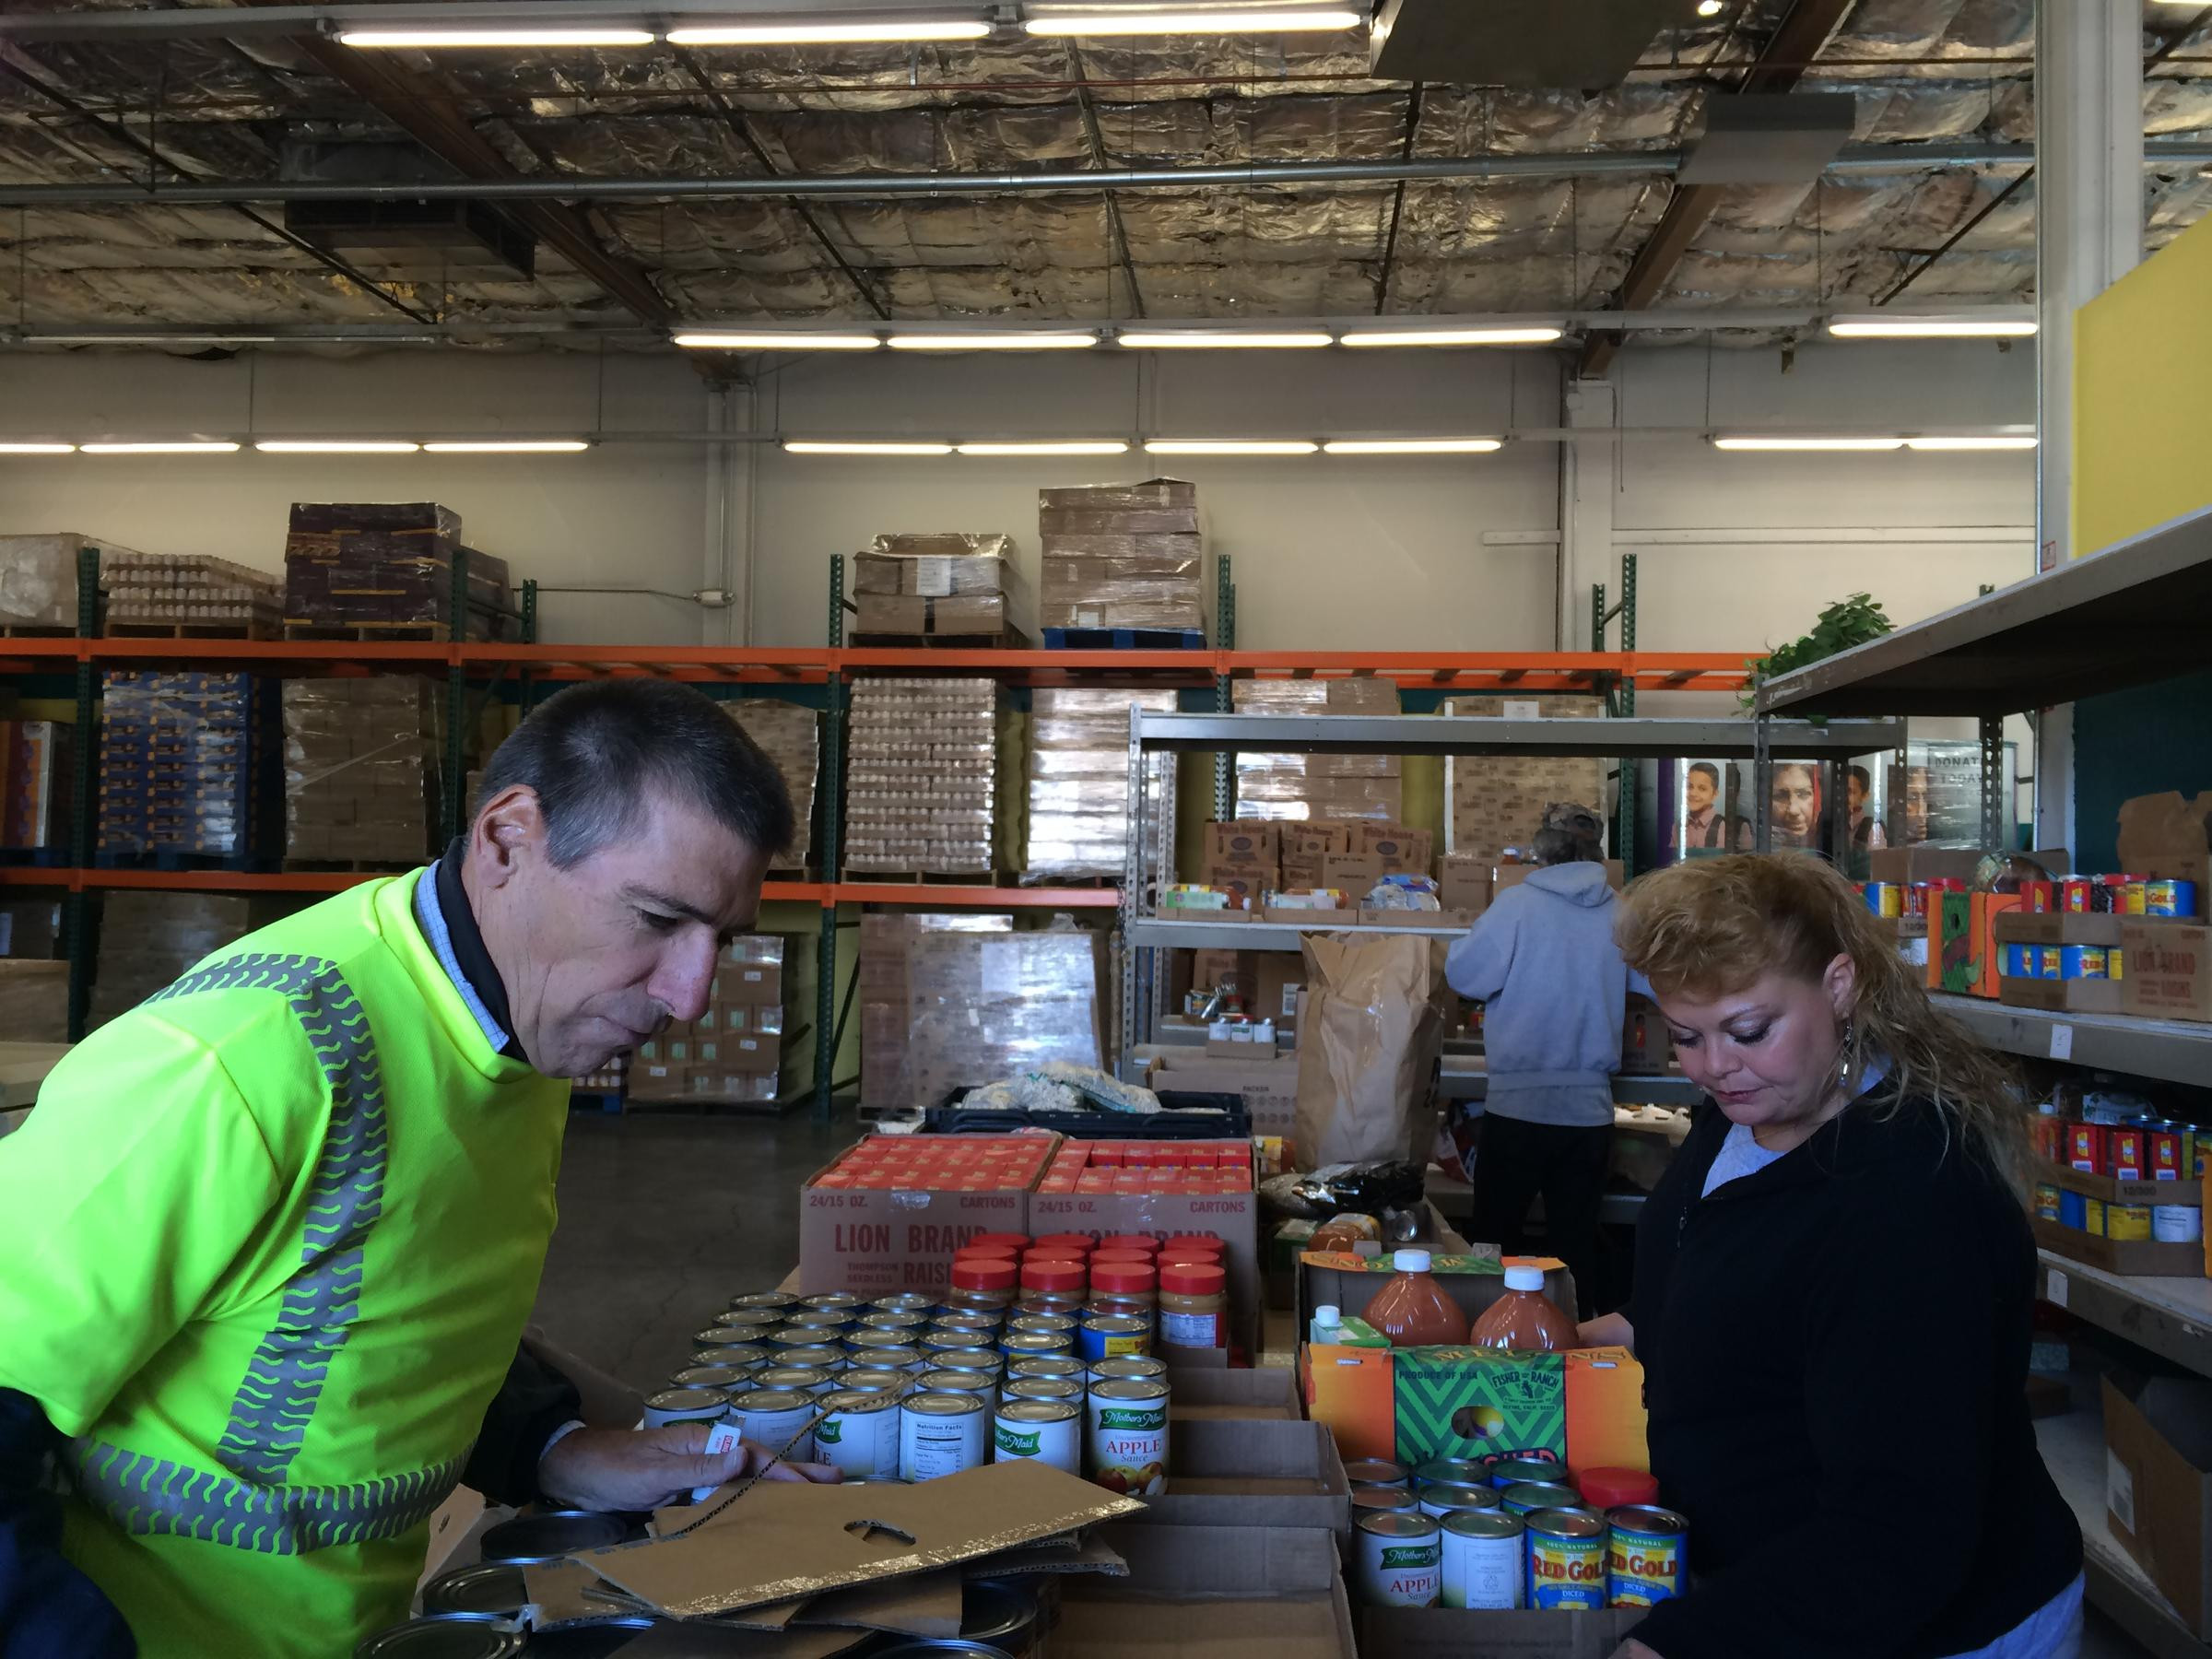 Best ideas about Catholic Charities Food Pantry . Save or Pin New photo ID system Catholic Charities says ting help Now.